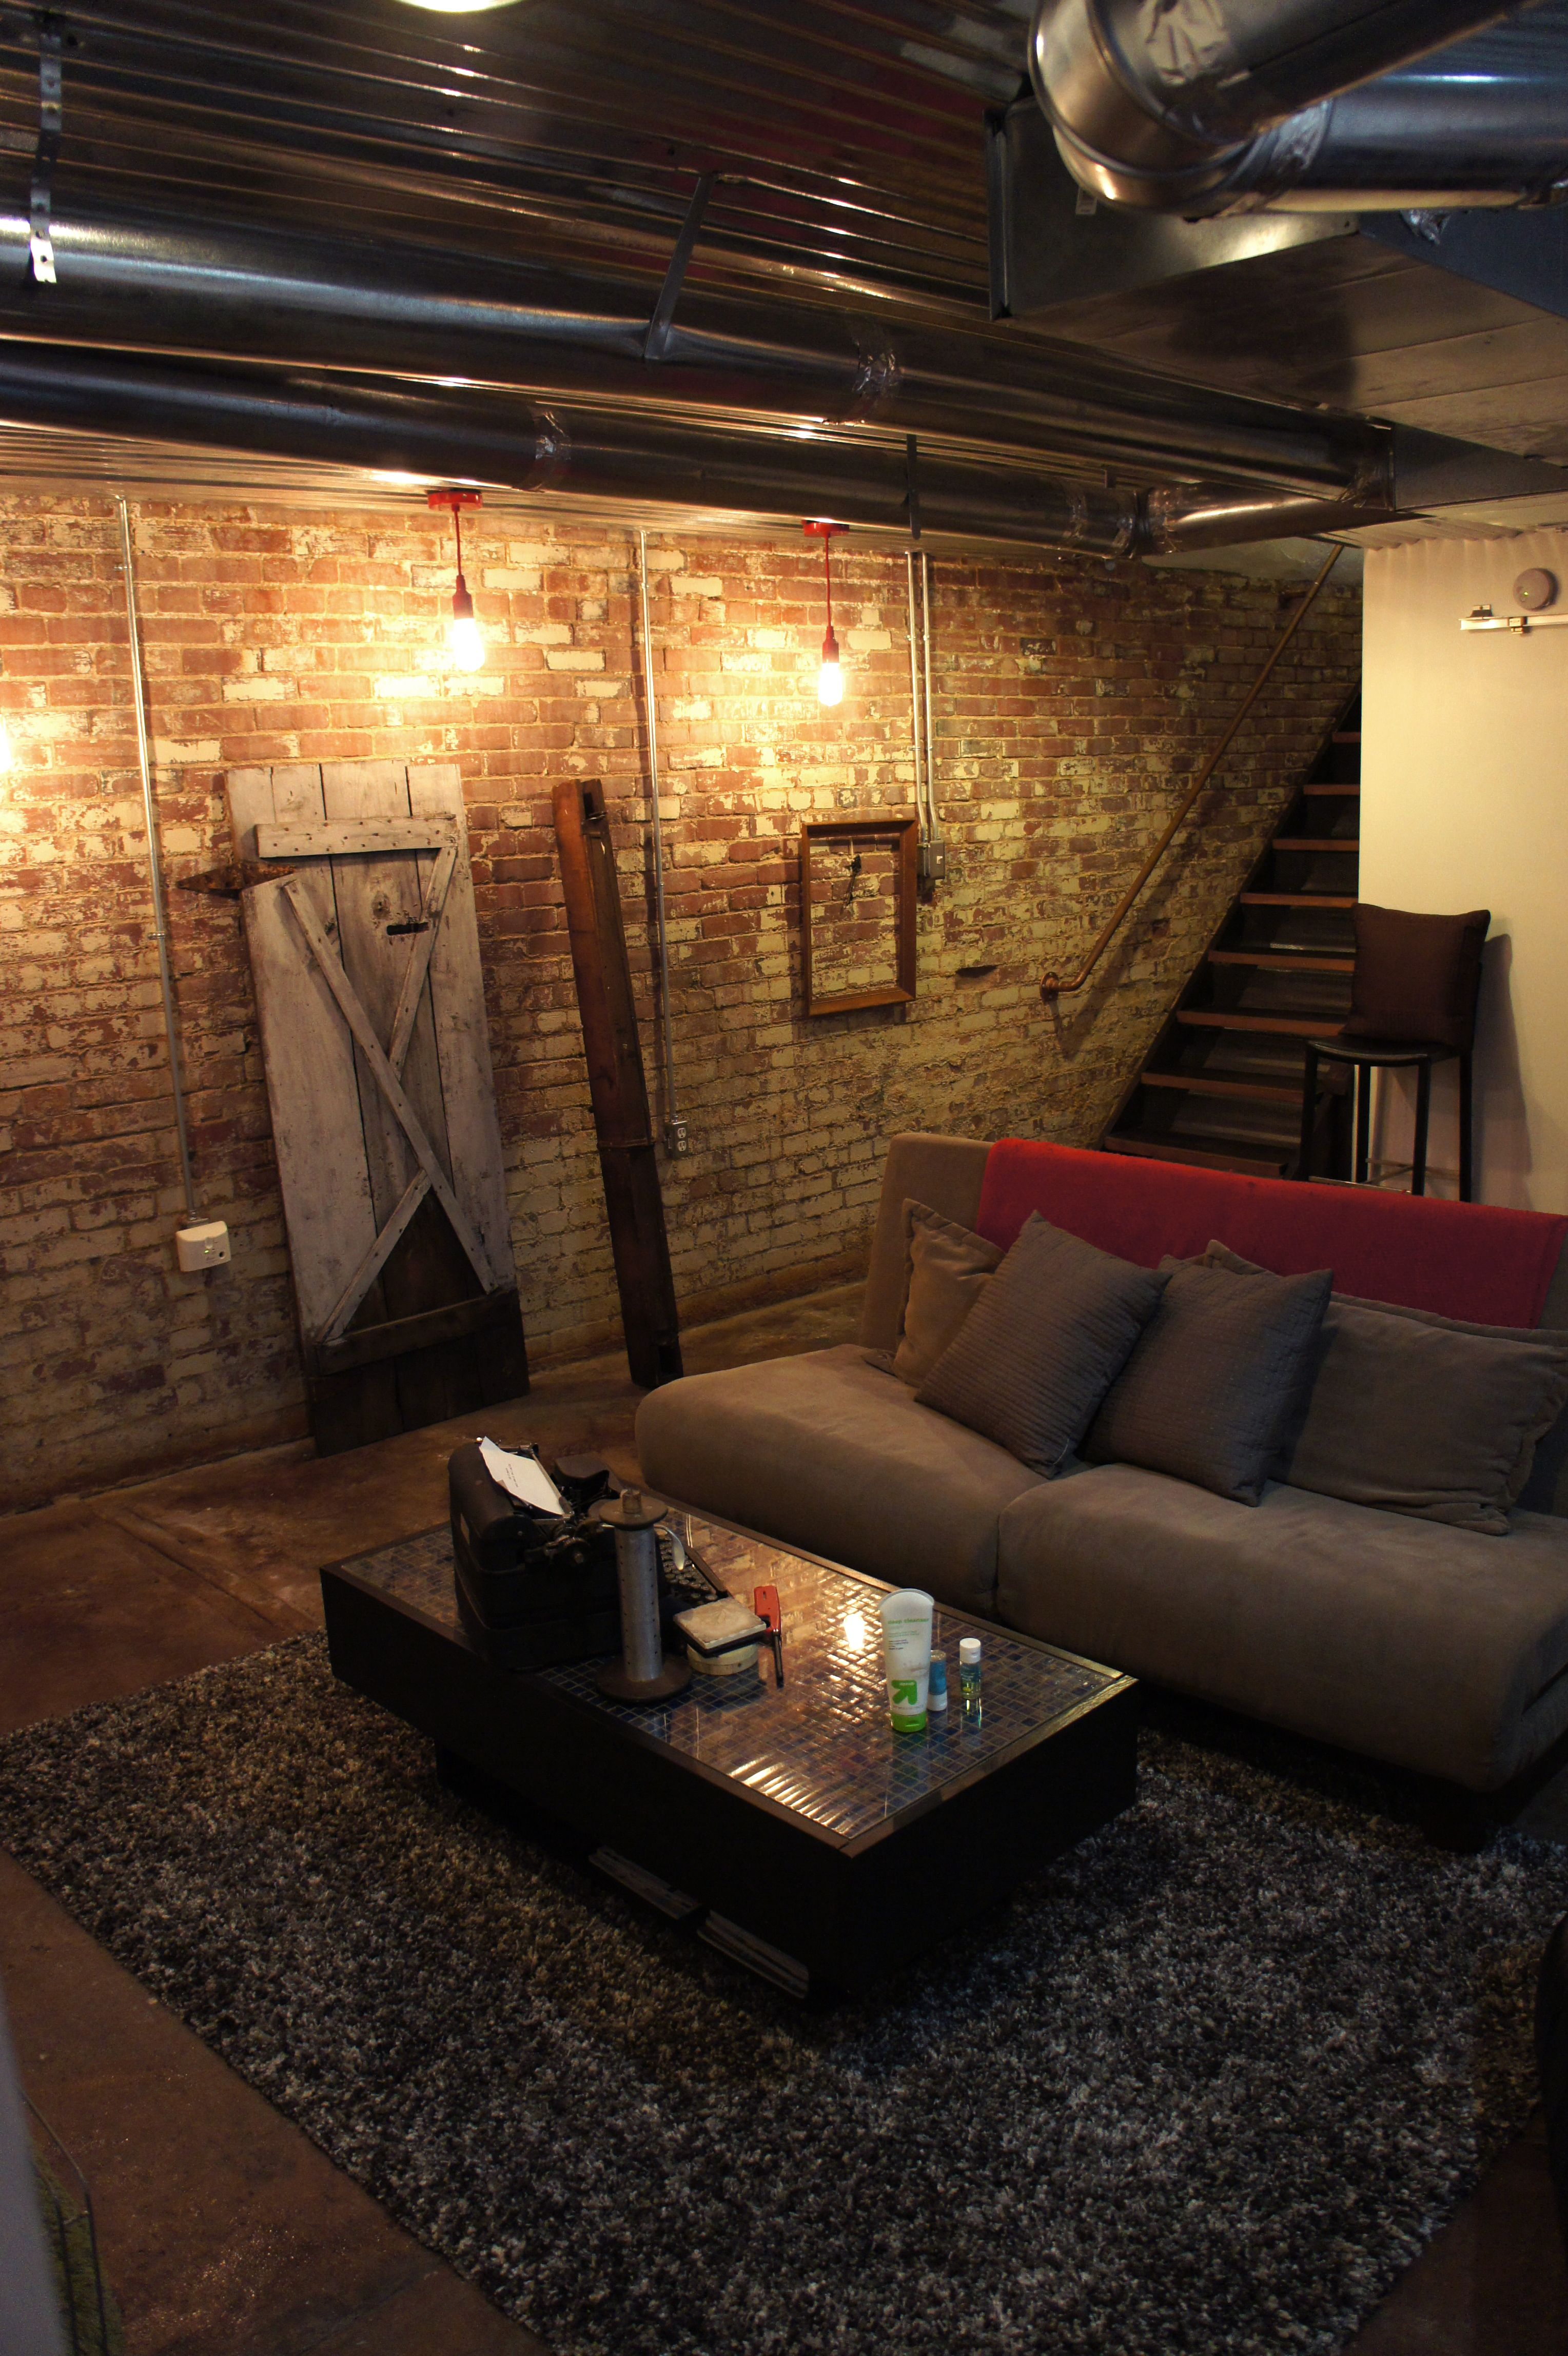 Industrial Basement Remodel Like The Exposed Pipes Height Added Brick Wall And Sliding Barn Door For The Basement Design Cozy Basement Industrial Basement